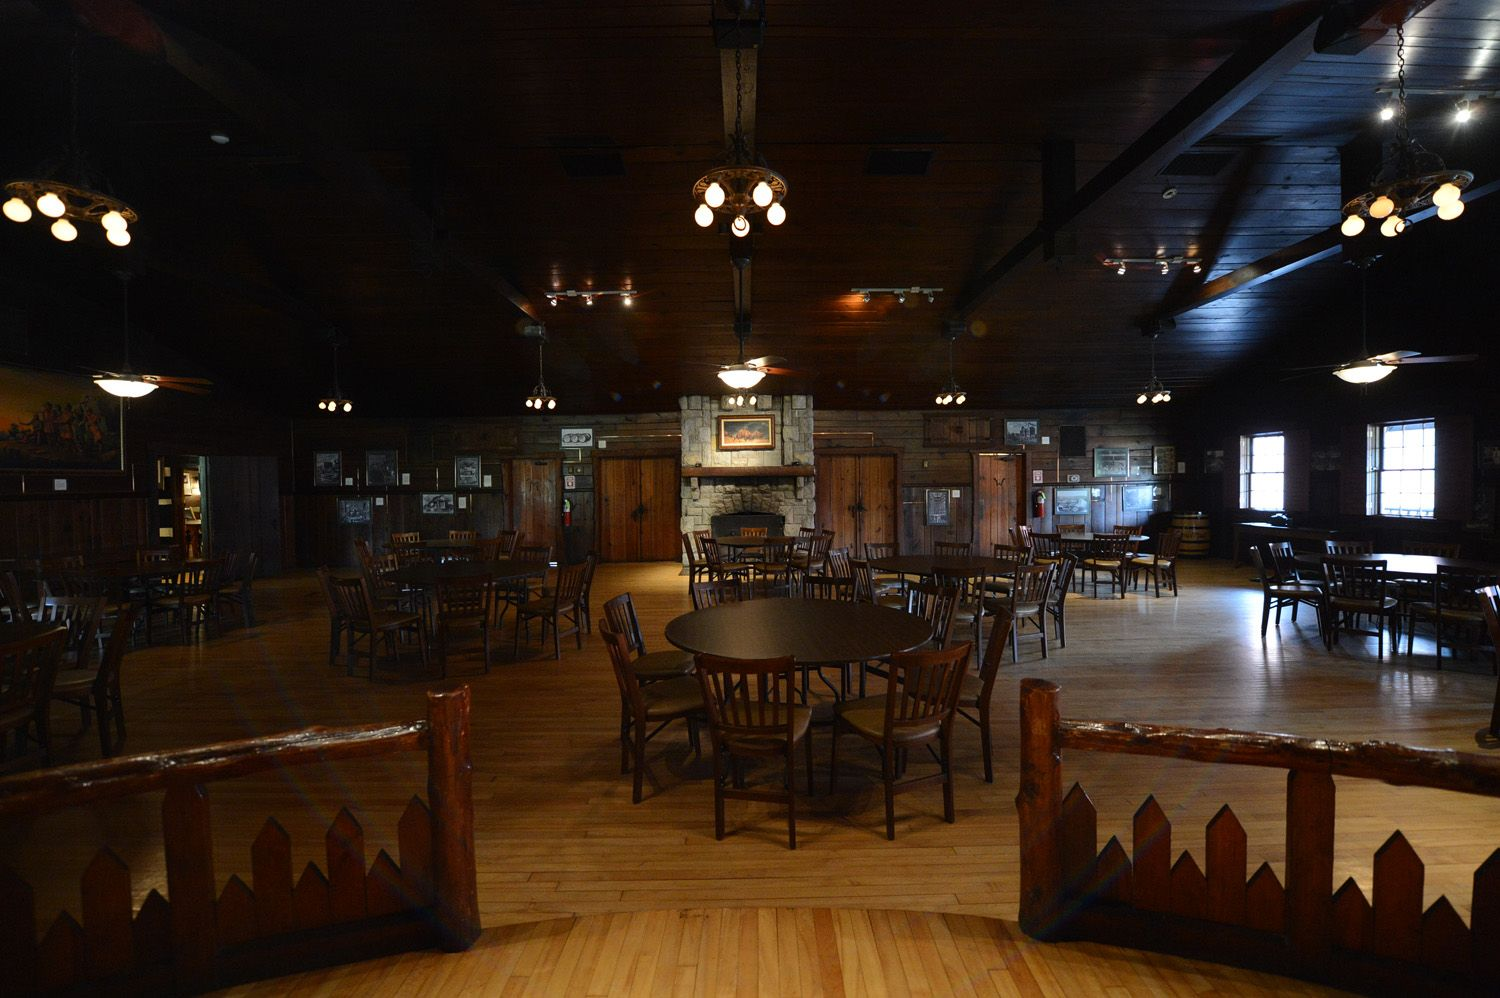 Norred S Weddings And Events: Inside Of Buffalo Trace Upstairs Clubhouse For Weddings